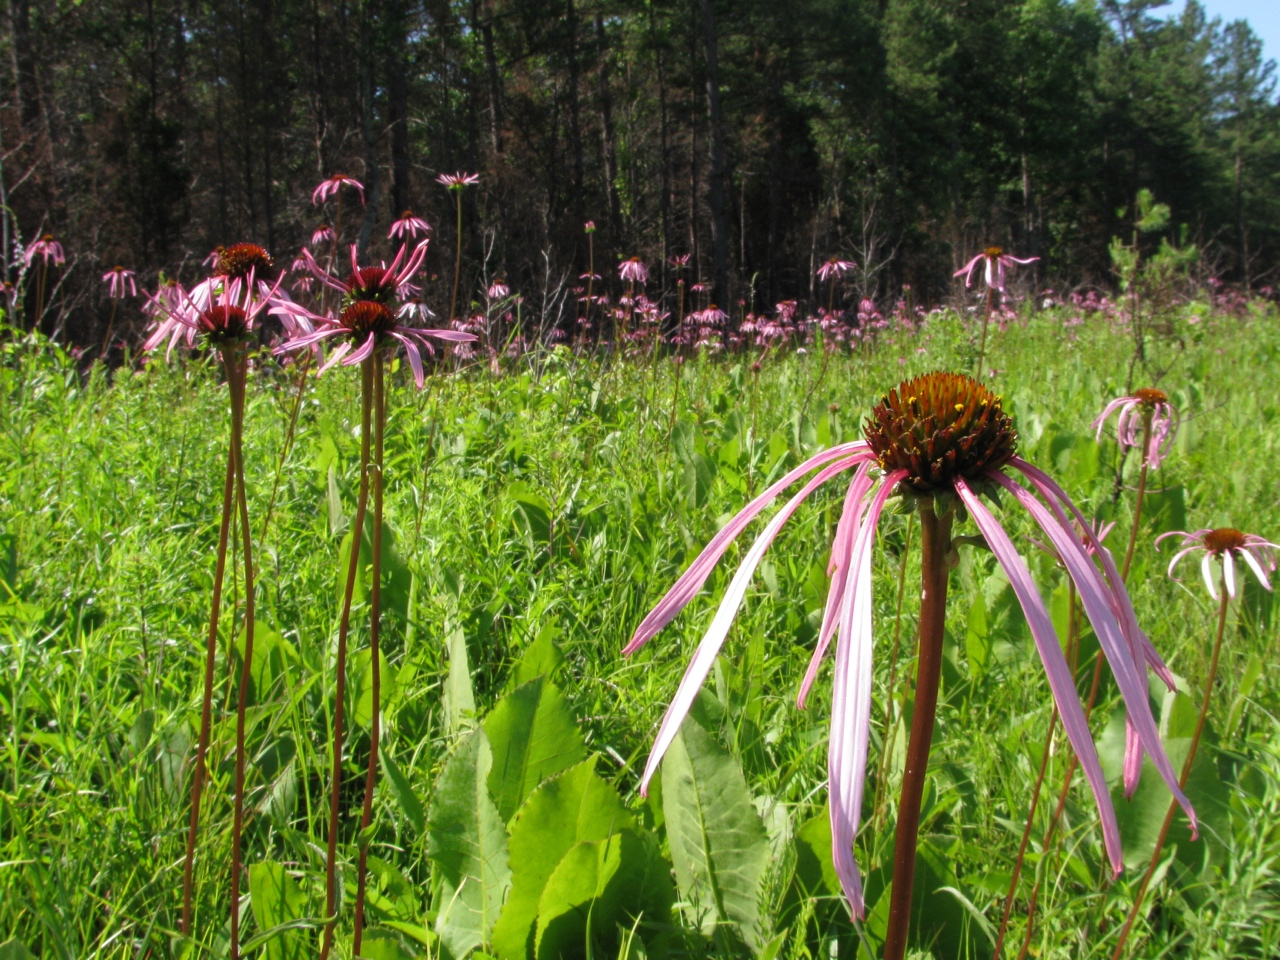 The Scientific Name is Echinacea laevigata [=Echinacea purpurea var. laevigata]. You will likely hear them called Smooth Purple Coneflower. This picture shows the Flowering in June of Echinacea laevigata [=Echinacea purpurea var. laevigata]